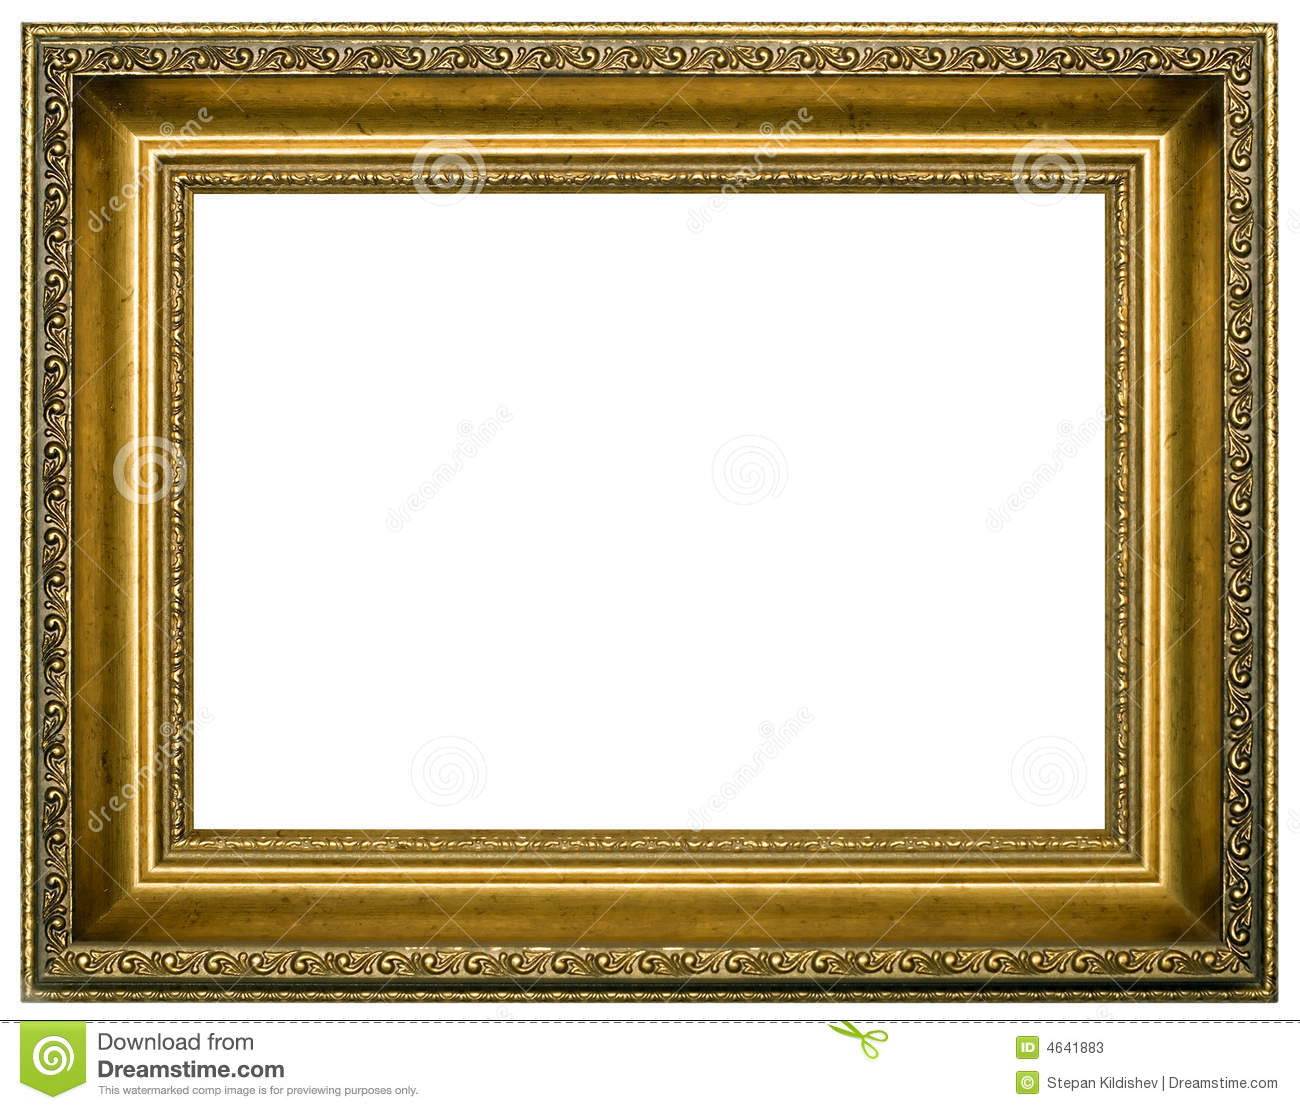 Painting Frames Frame For Painting Stock Photos Image 4641883